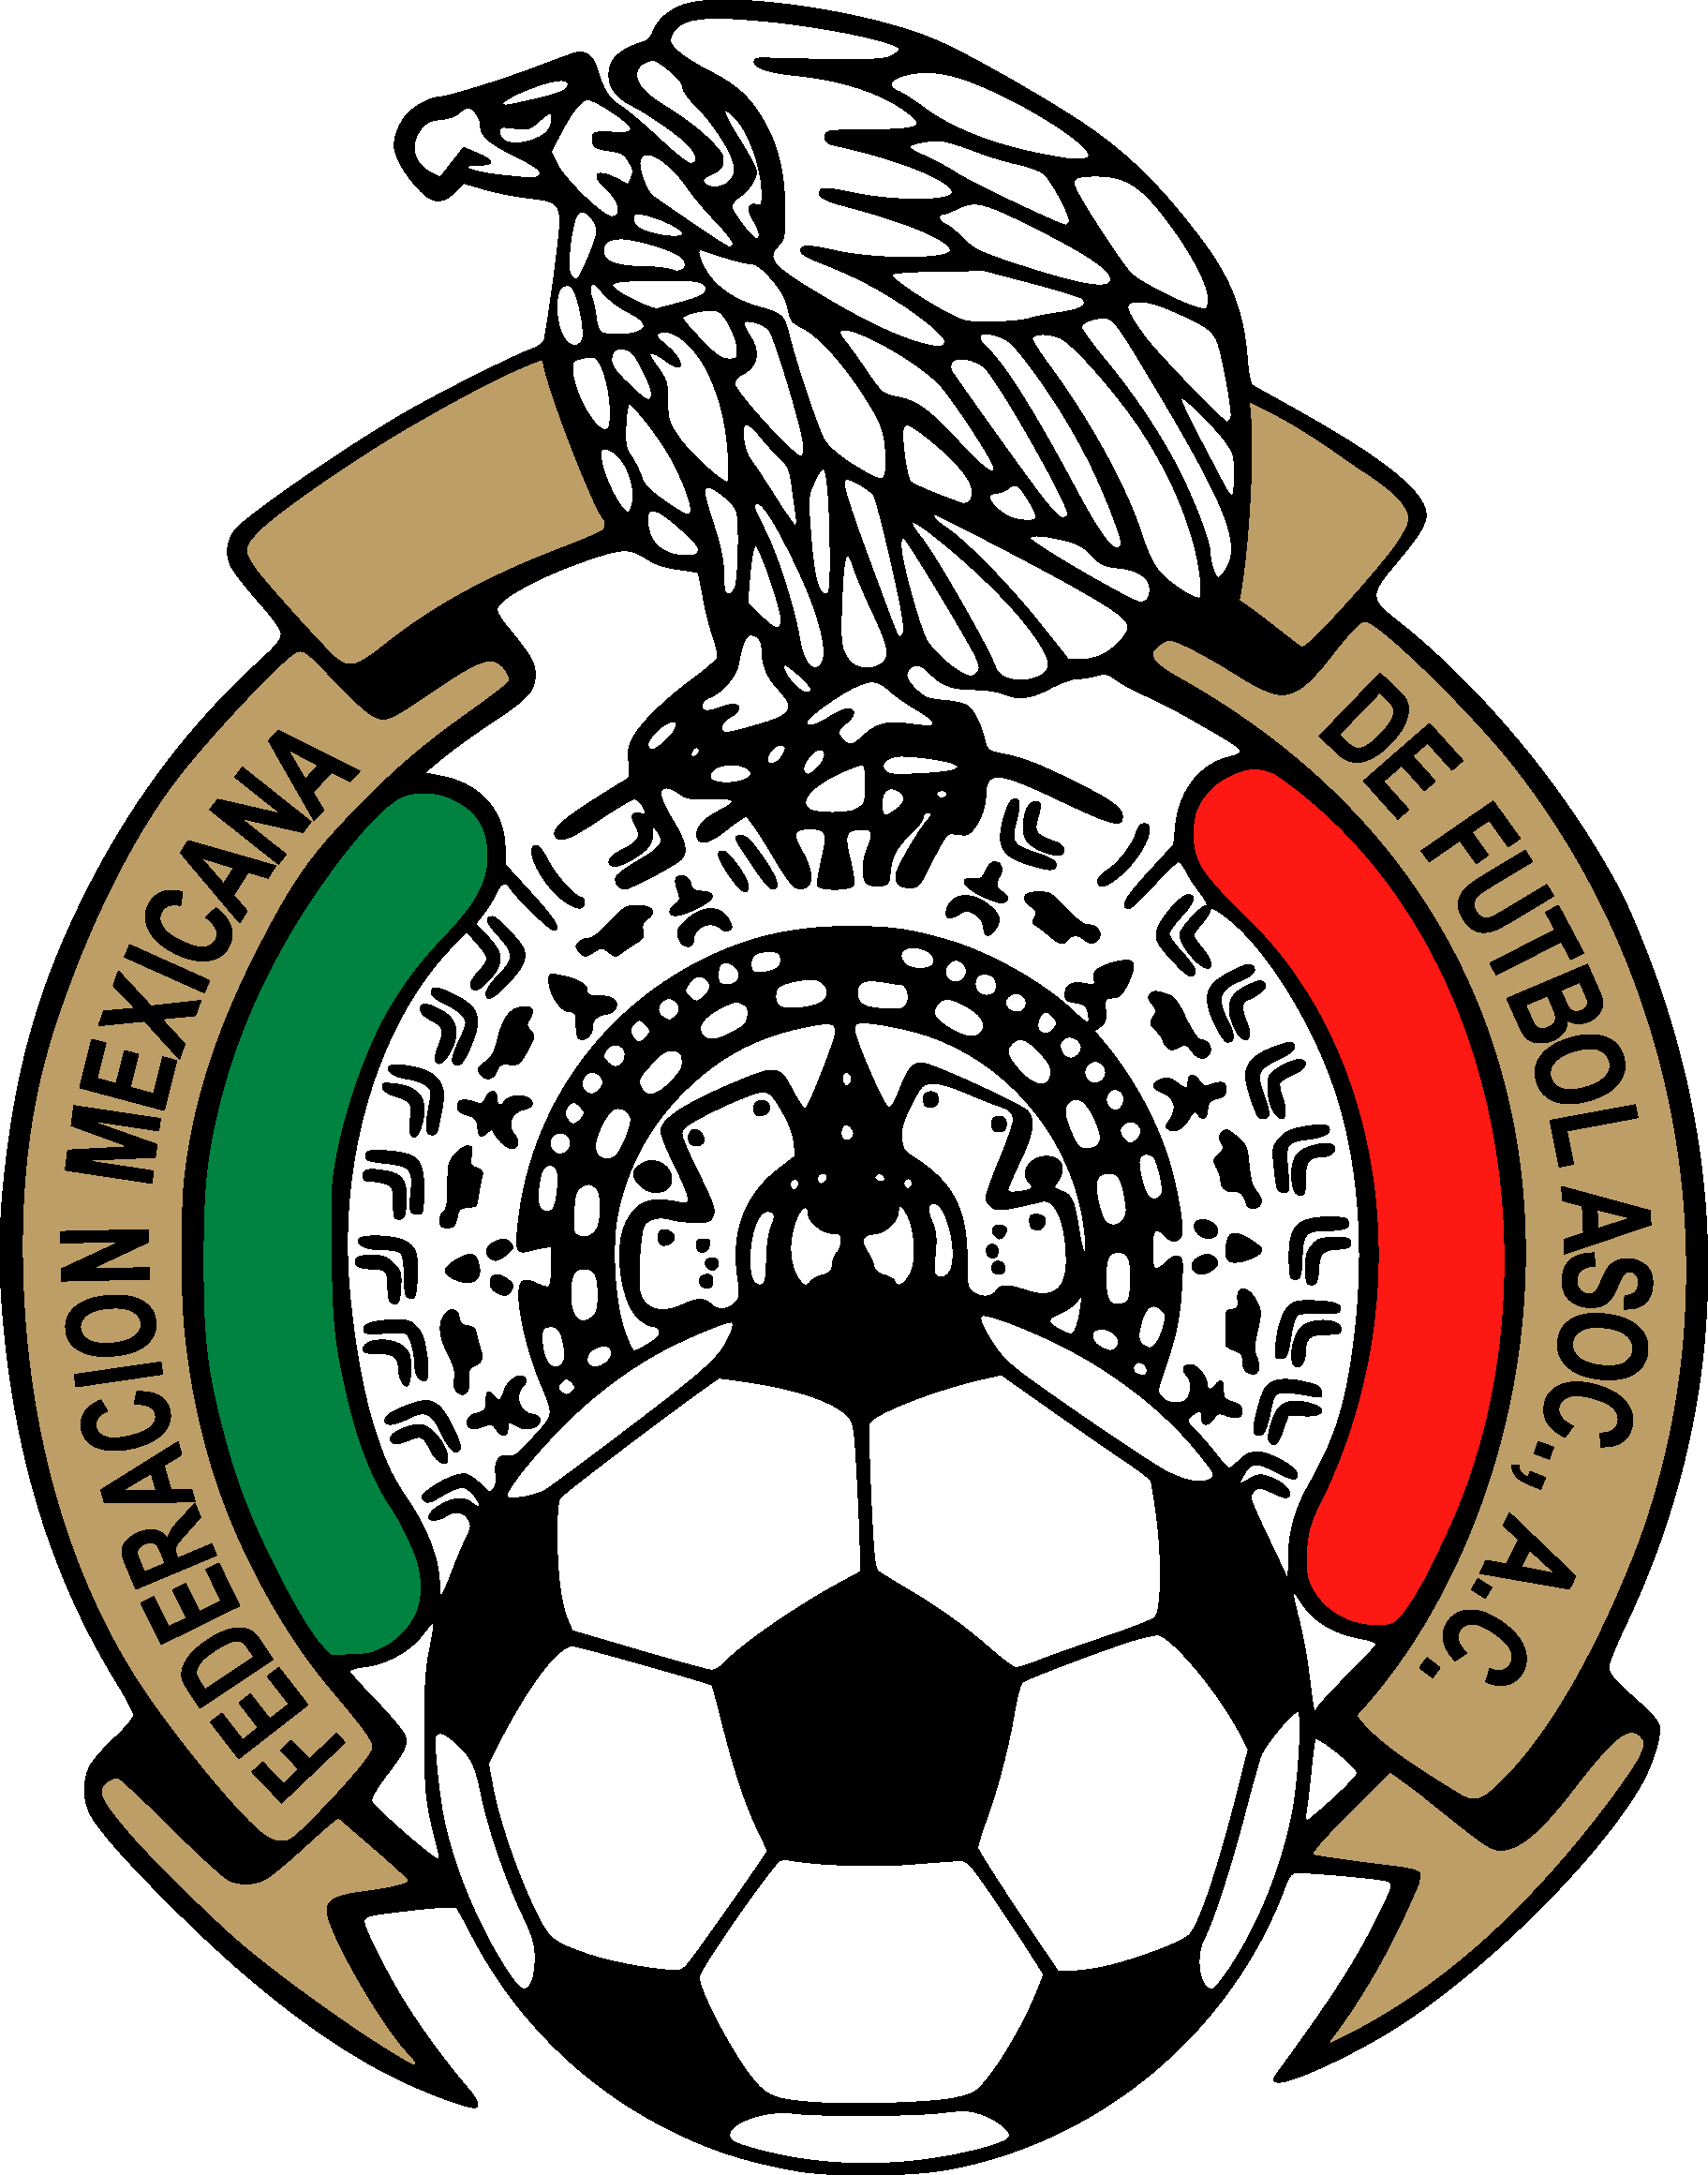 Aztec football clipart graphic library download Mexican Football Federation & Mexico National Football Team Logo ... graphic library download